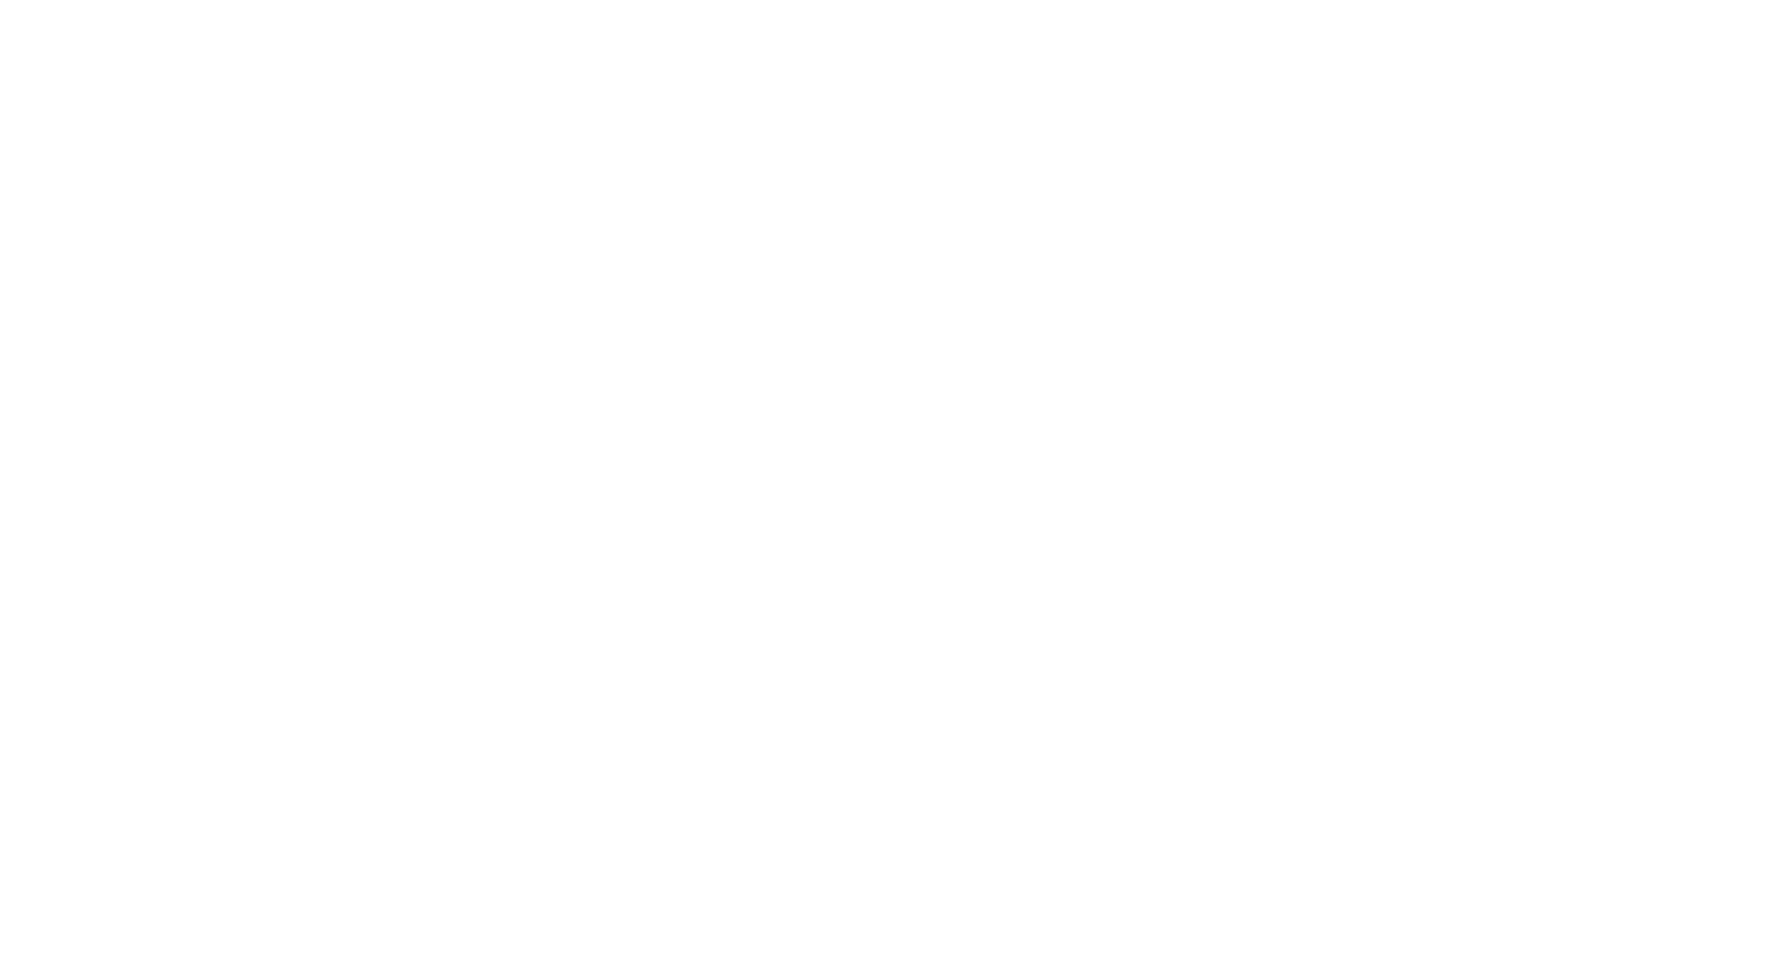 AFI Wine Festival of Central Florida